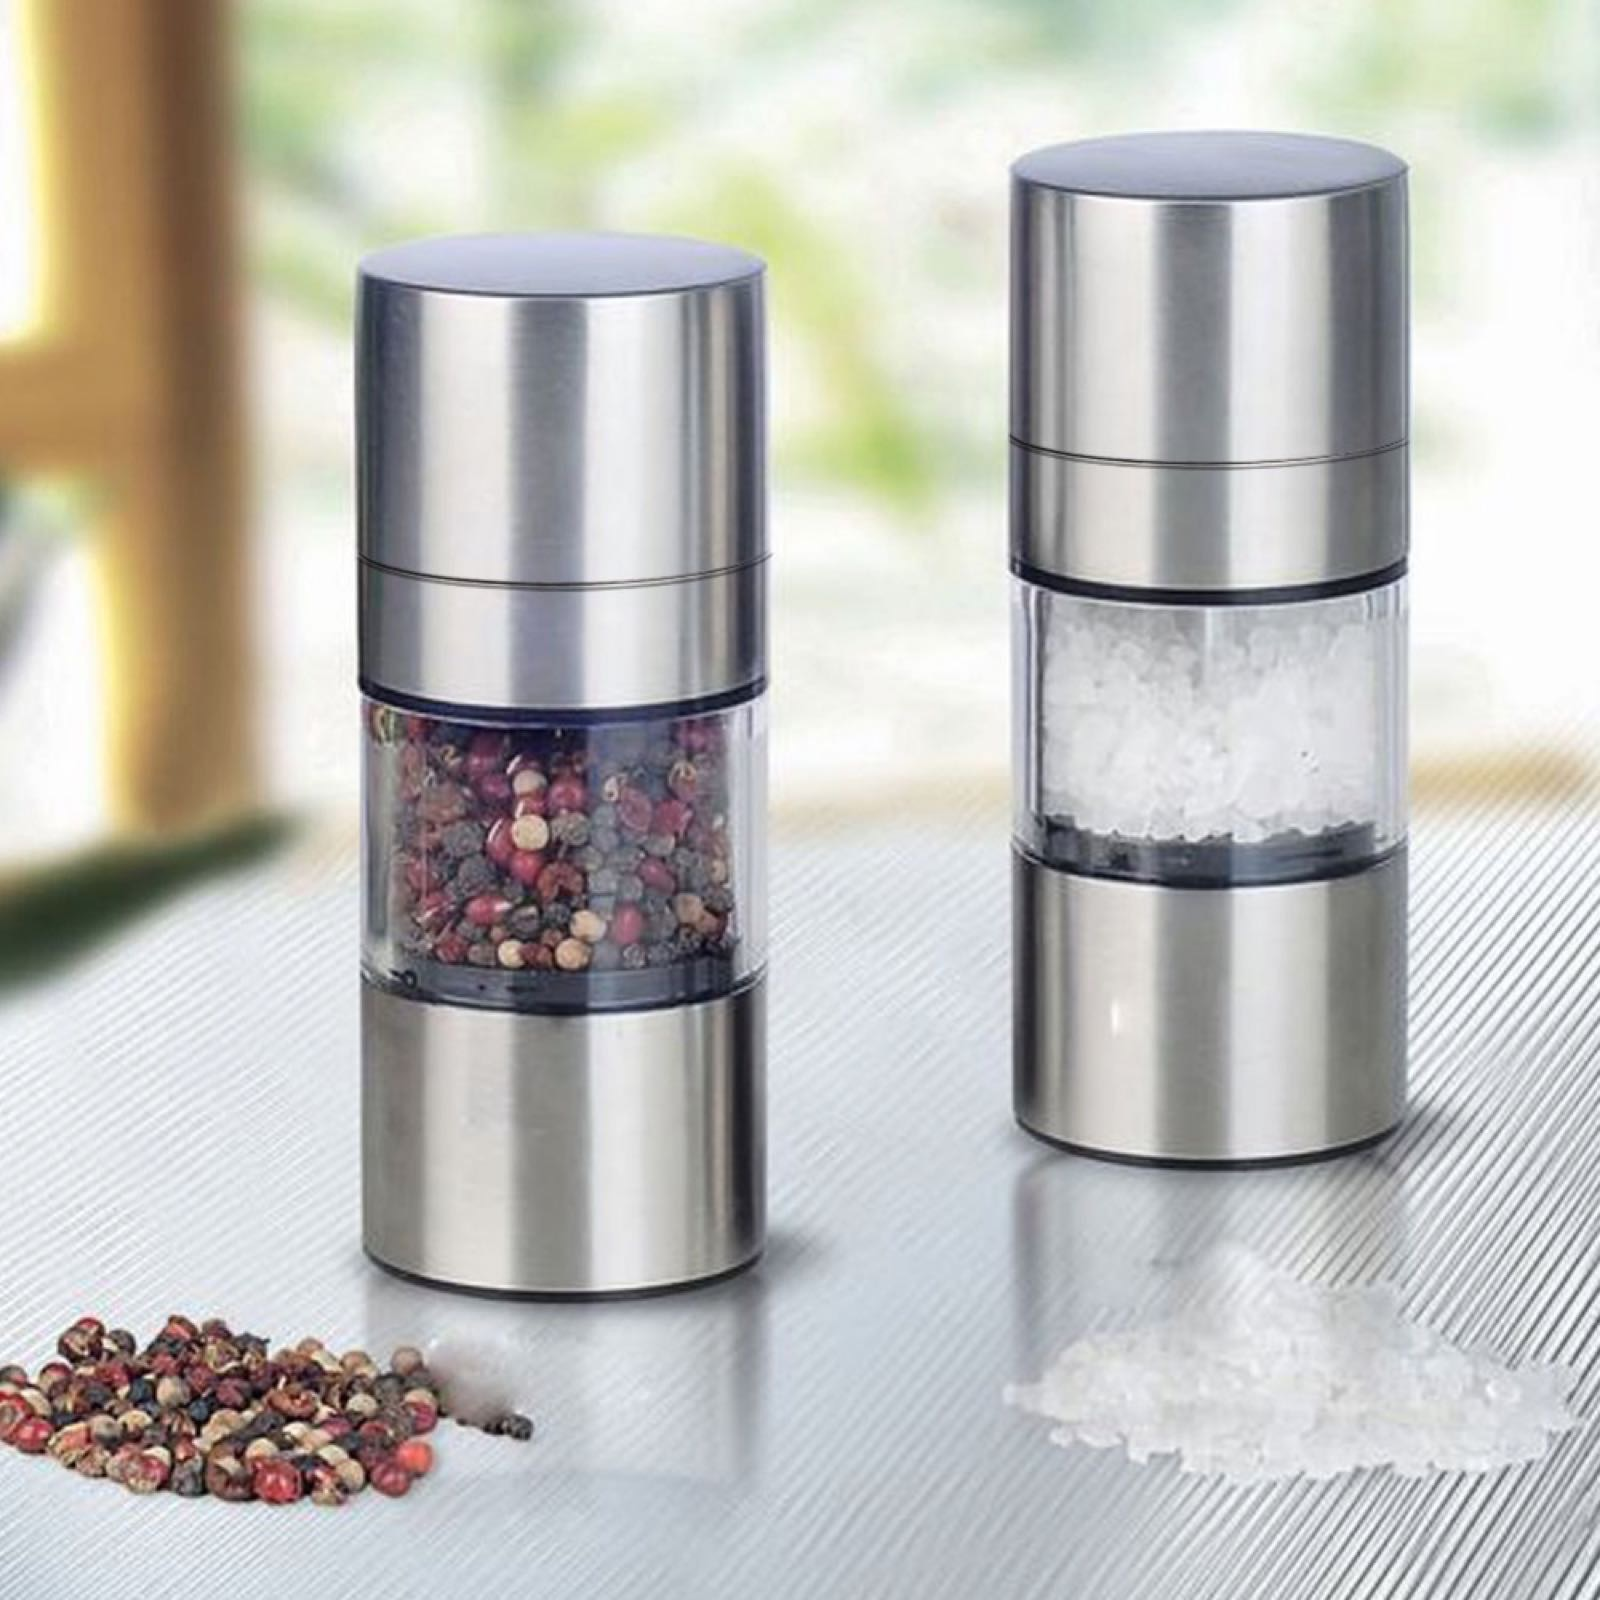 Nuvita Premium Stainless Steel Mini Salt and Pepper Mills Grinder - Se